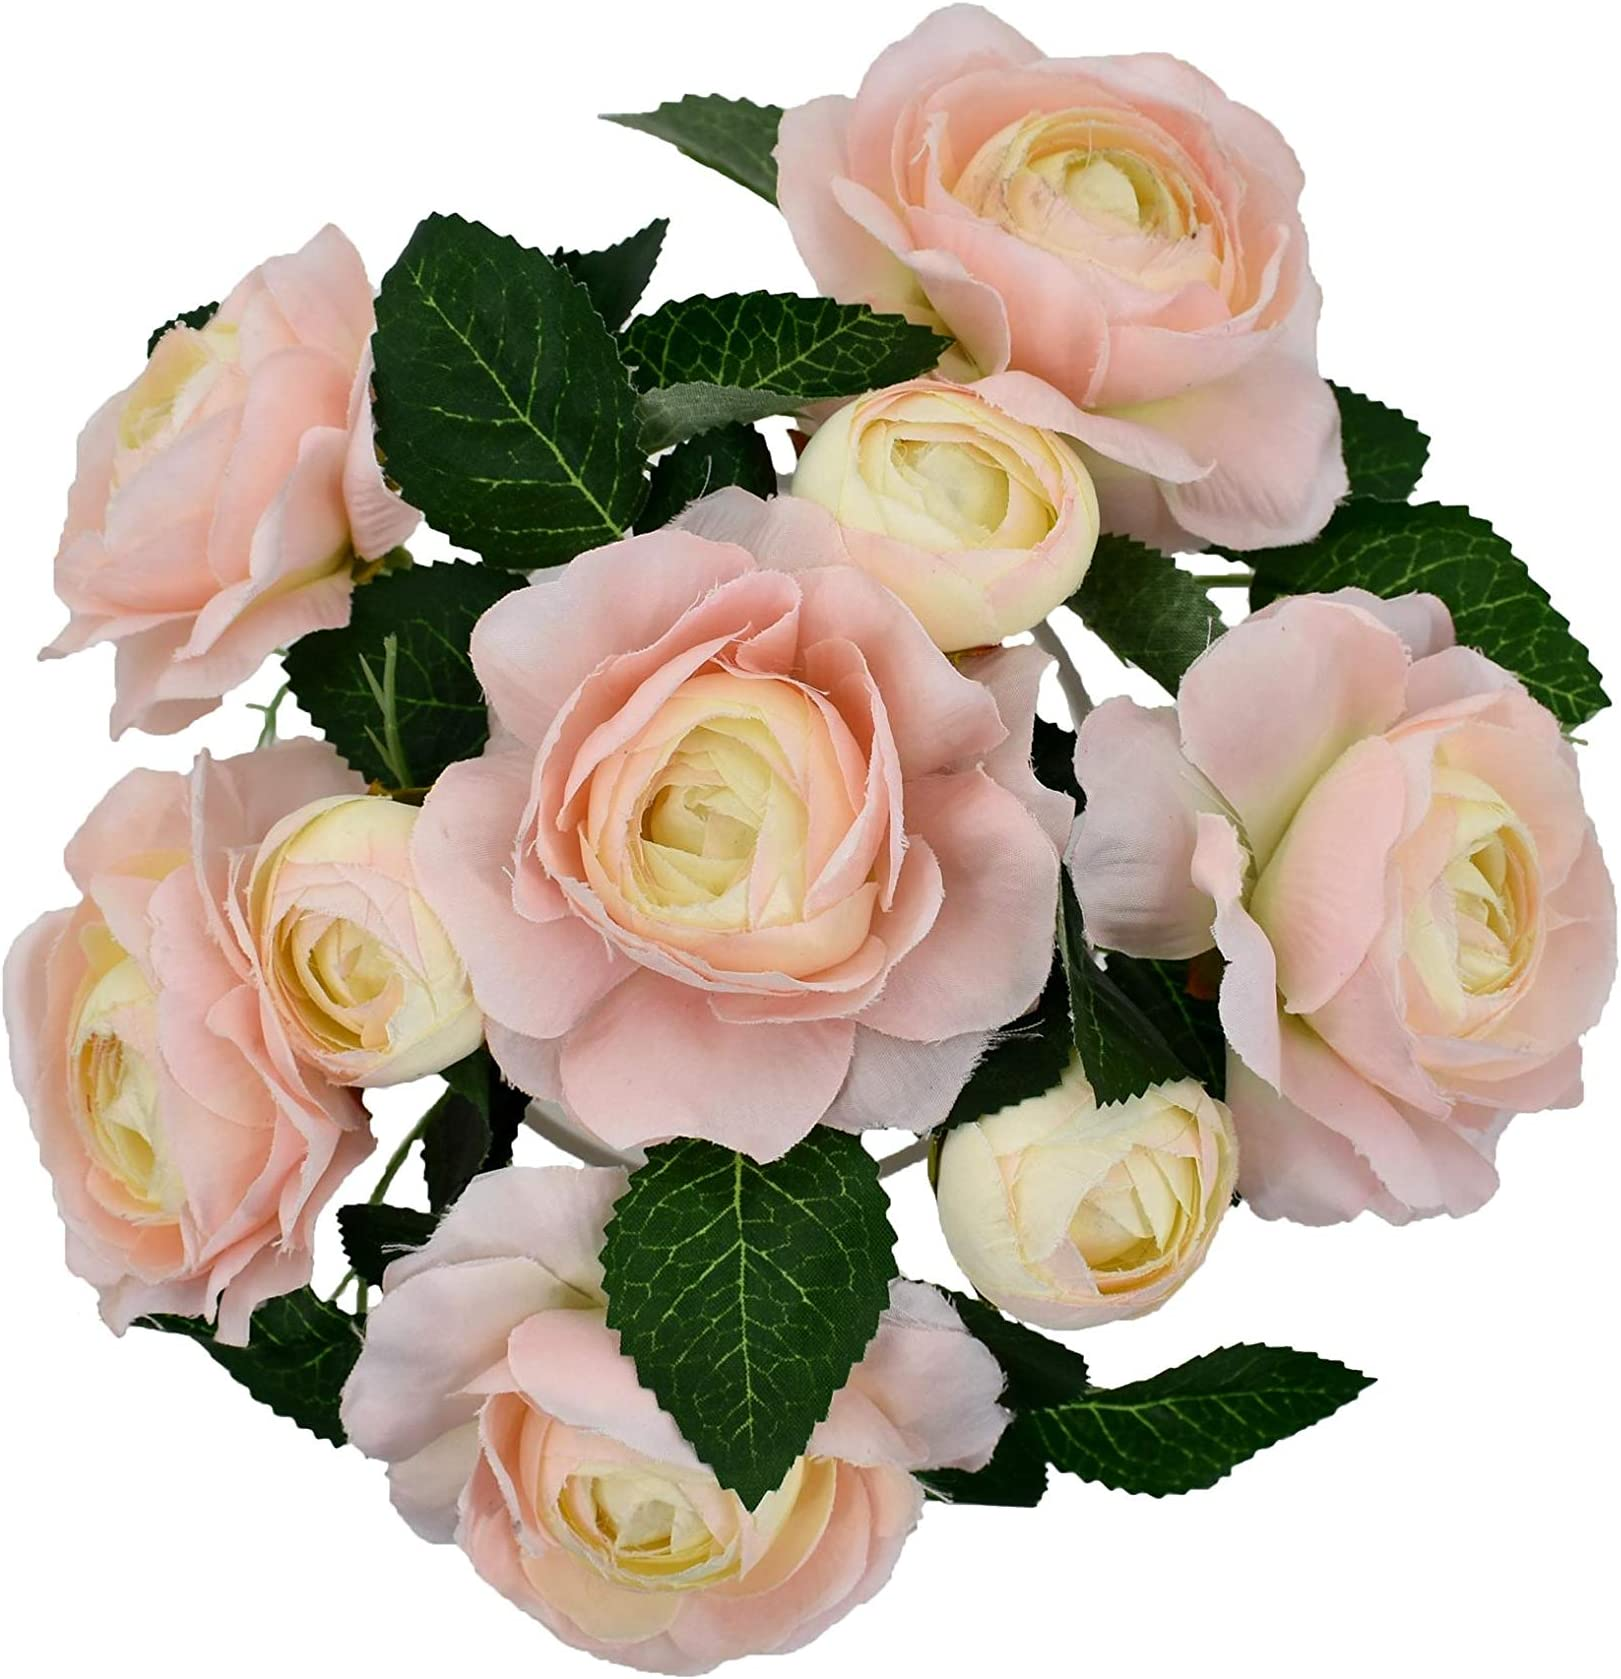 Beautiful Silk Rose Flowers Artificial Plants Gift For Anniversary Party Birthday Wedding Decoration Price In Uae Amazon Uae Kanbkam